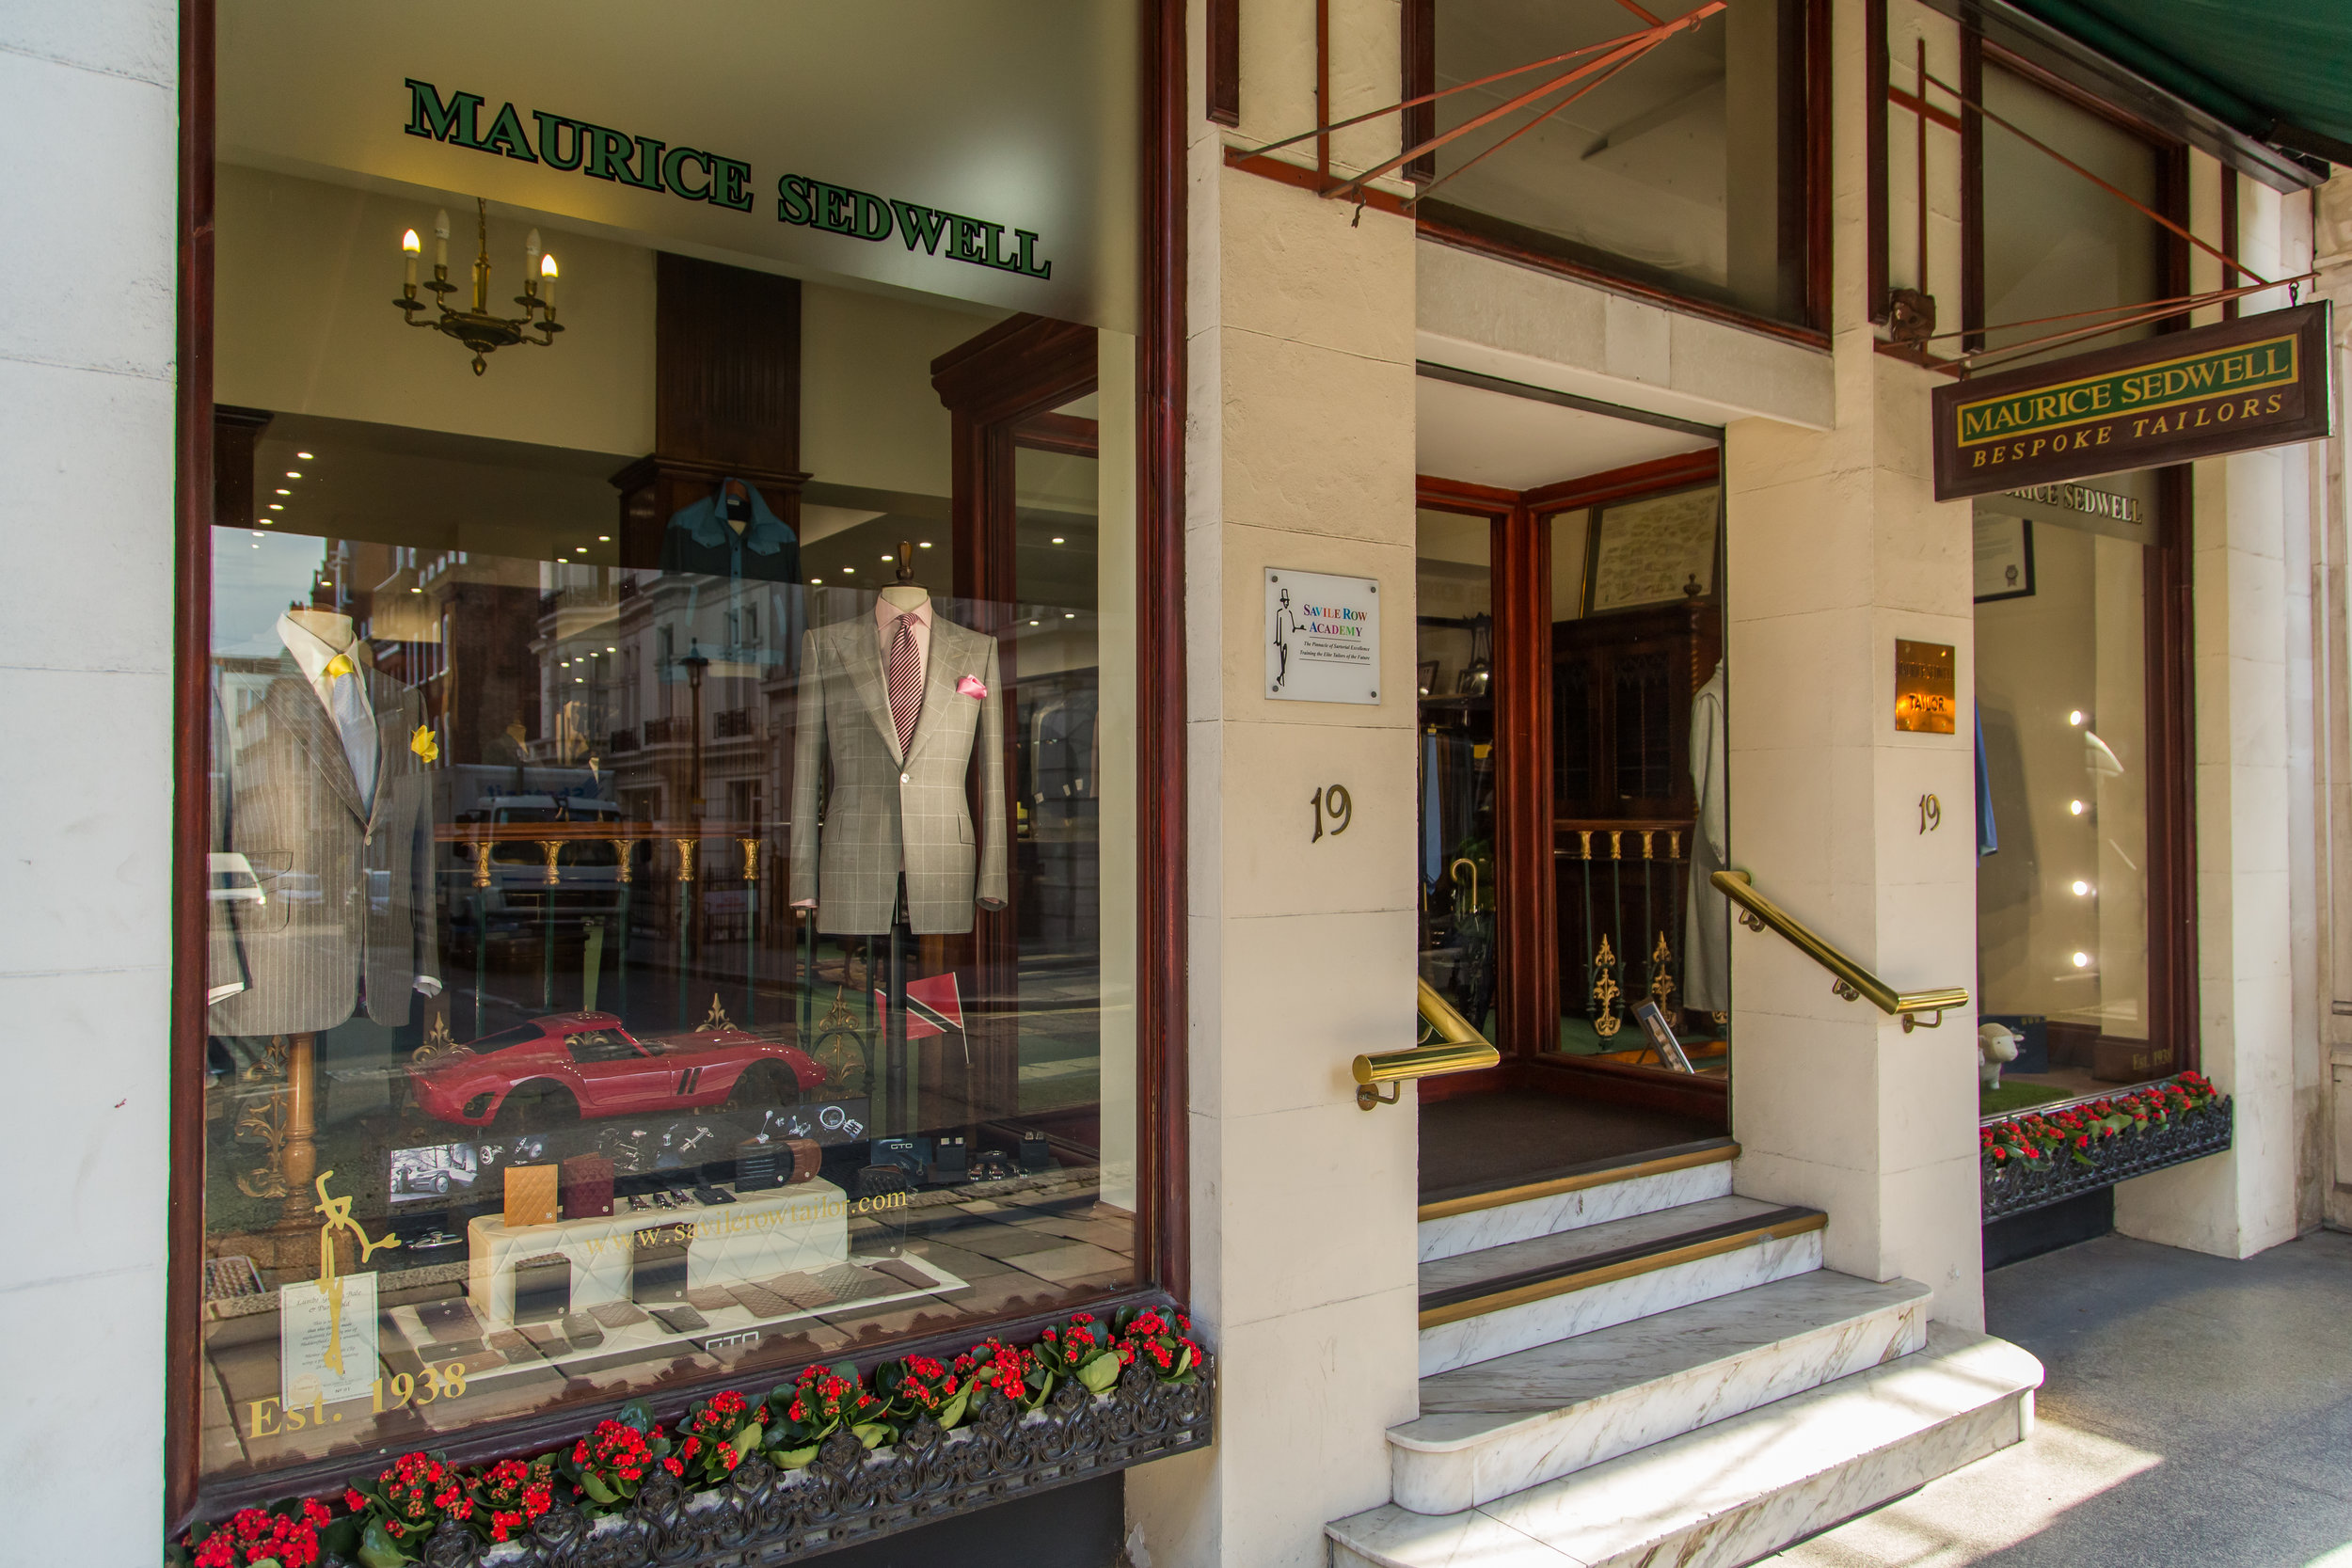 The Maurice Sedwell store on Savile Row.